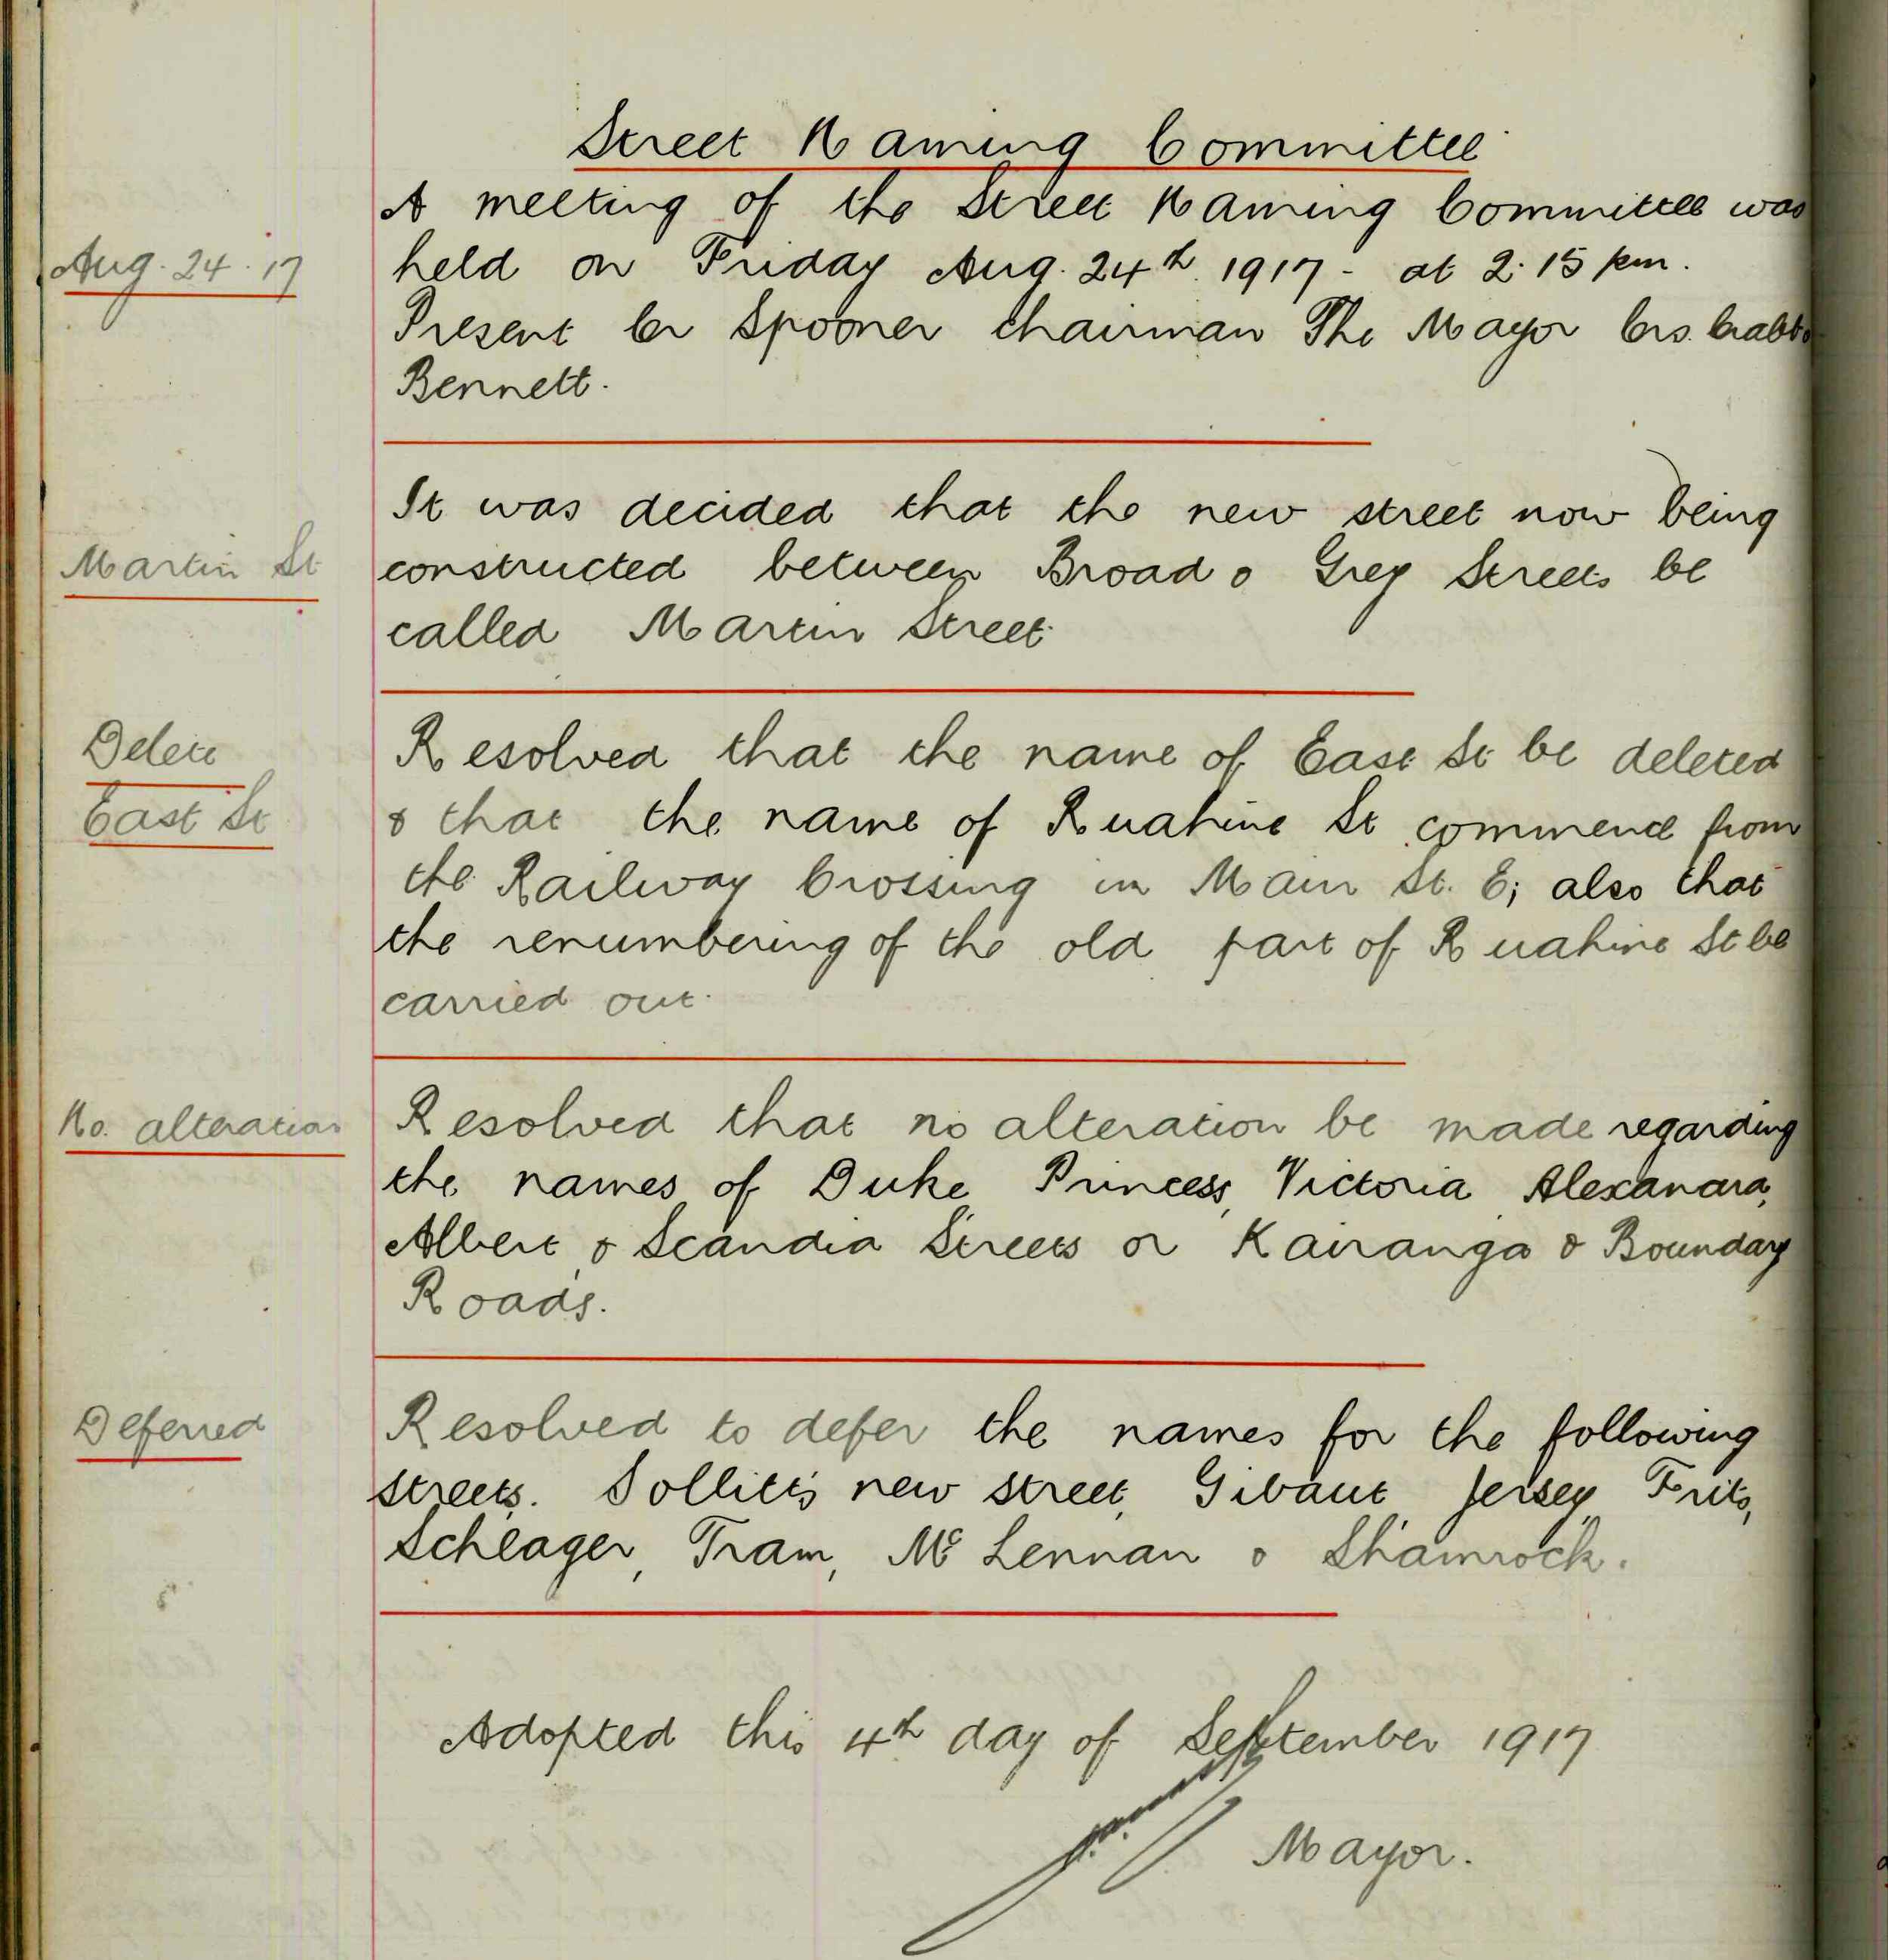 Figure 1:Palmerston North City Council minute book entry showing the decision to name the newly constructed road Martin Street on 4 September 1917. Reference:Minutes of Council Meetings, 1914-1917, Volume 7, Series 1/1/1, Ian Matheson City Archives.